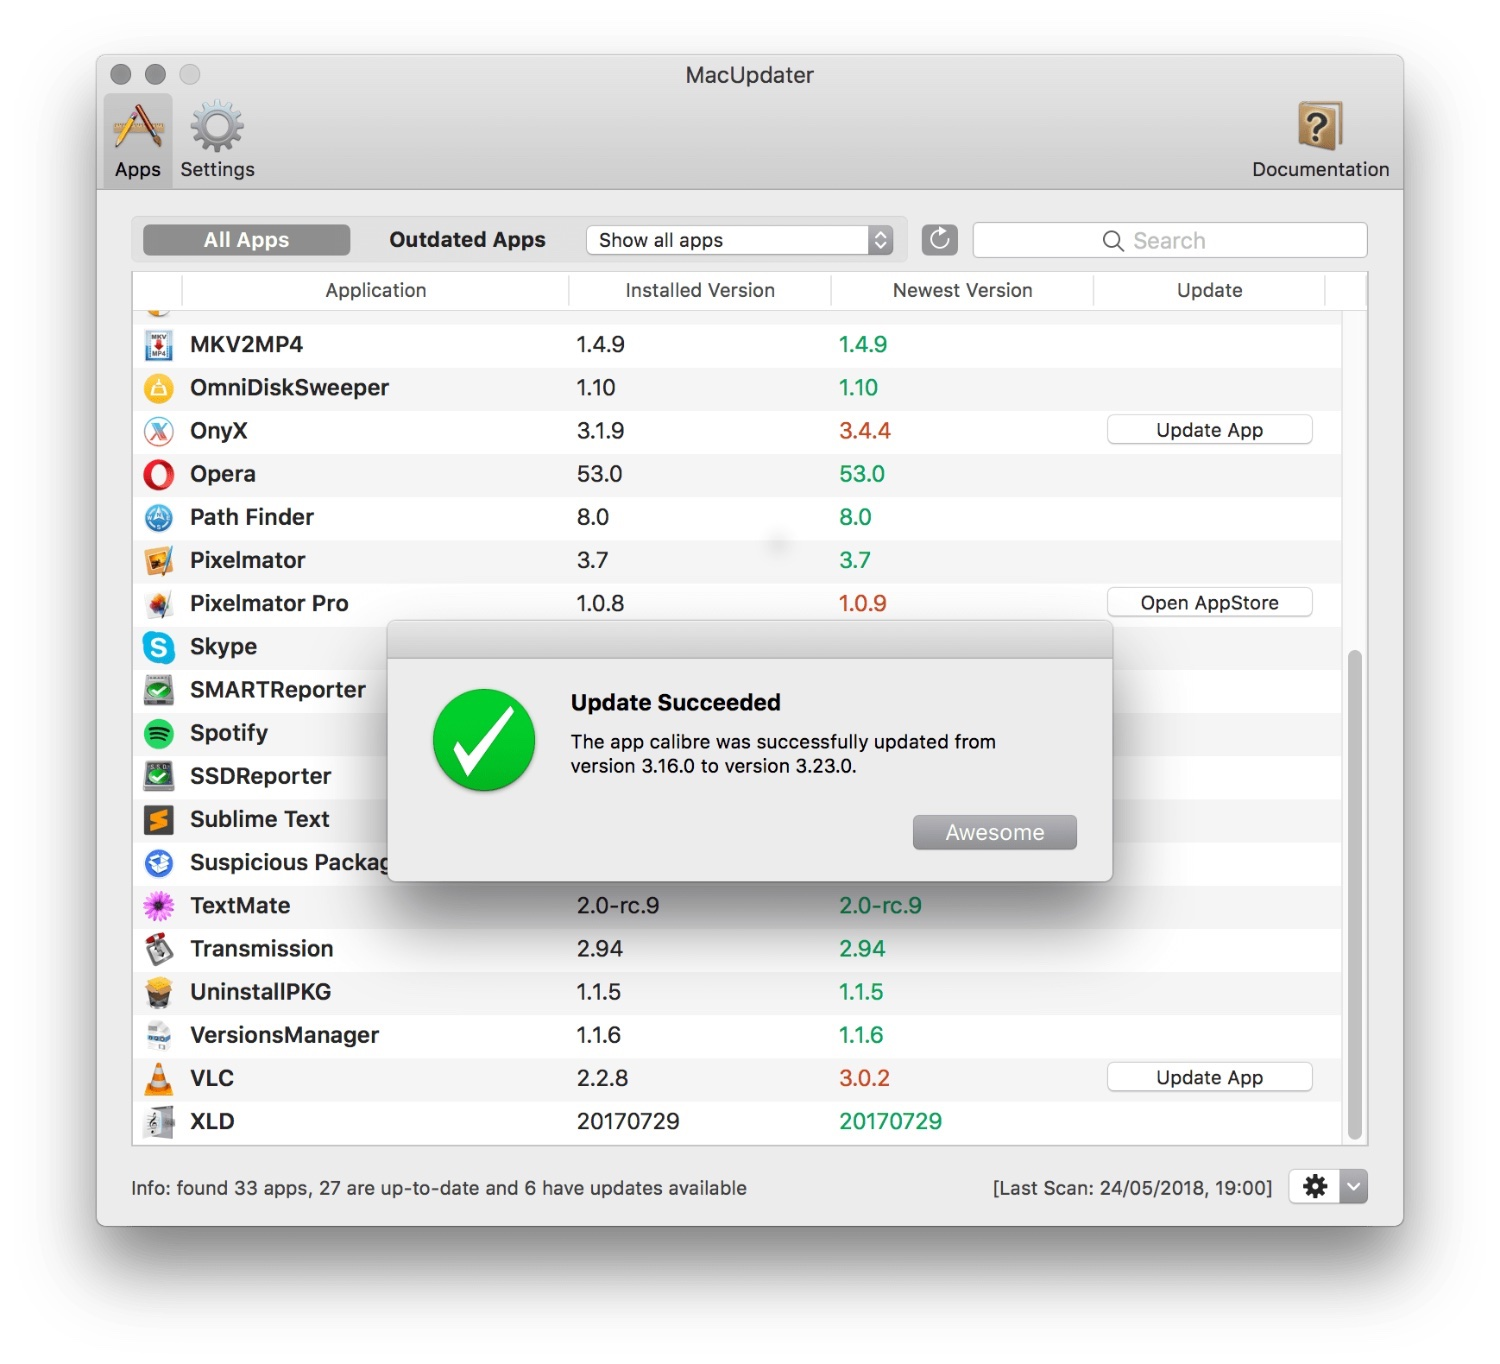 MacUpdater can now update multiple apps at once